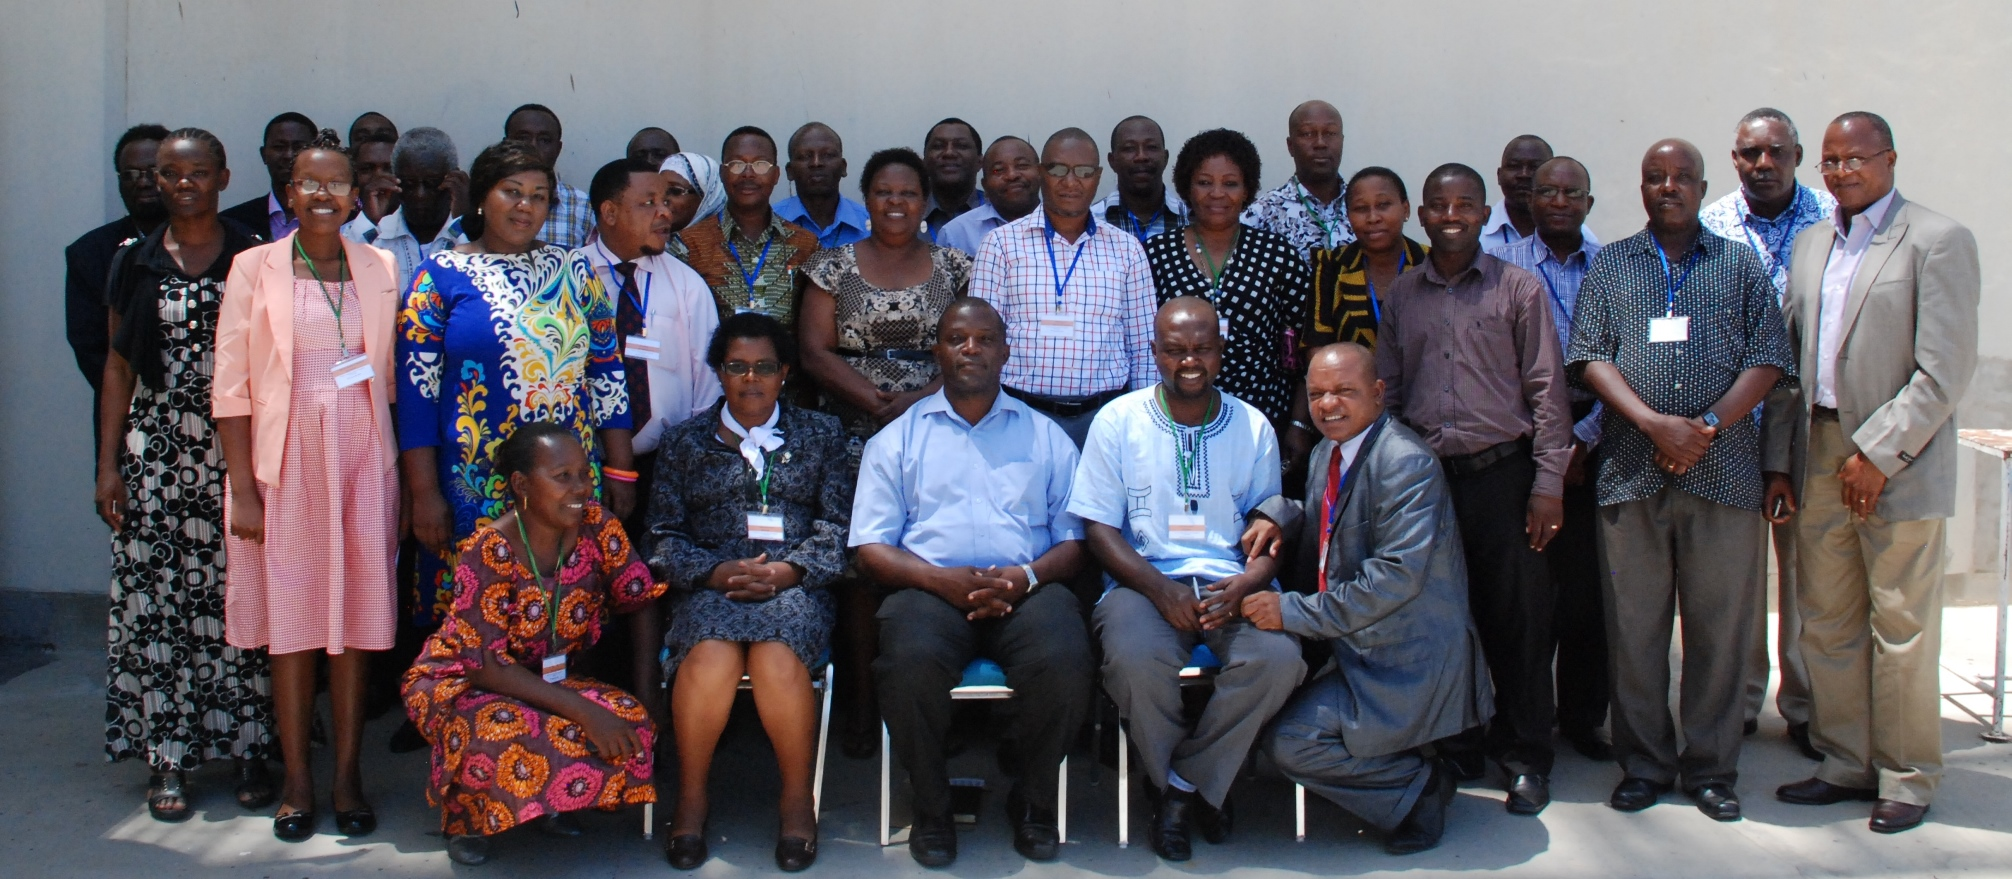 Climate change actors from governmental and non-governmental organizations present at the workshop. At the centre (in a blue shirt) is the guest of honor, Dr Julius Ningu,  the Director for Environment at the Vice Presidents' Office.